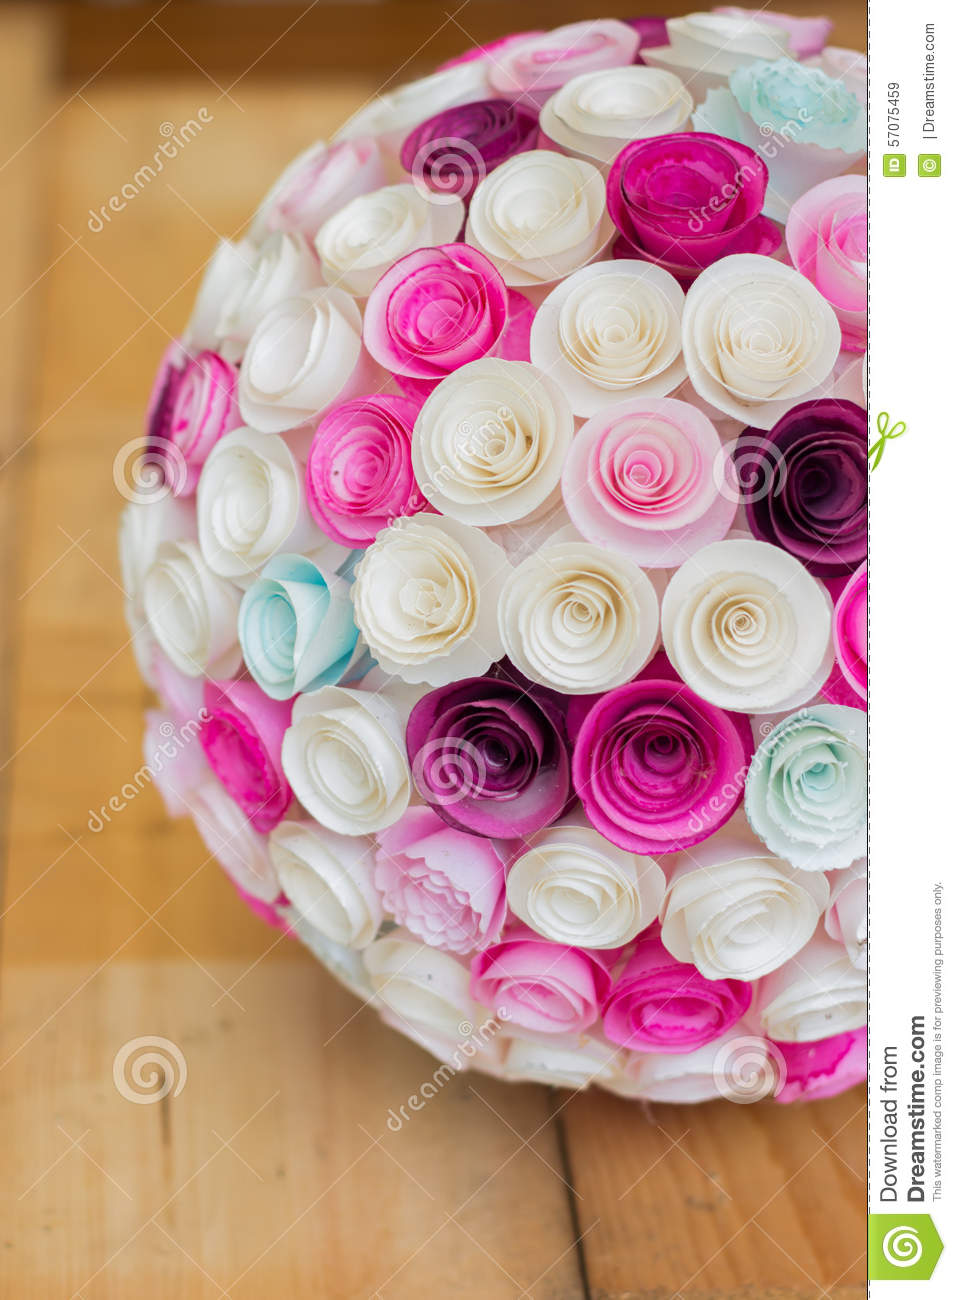 Paper flowers ball stock image. Image of color, bouquet - 57075459